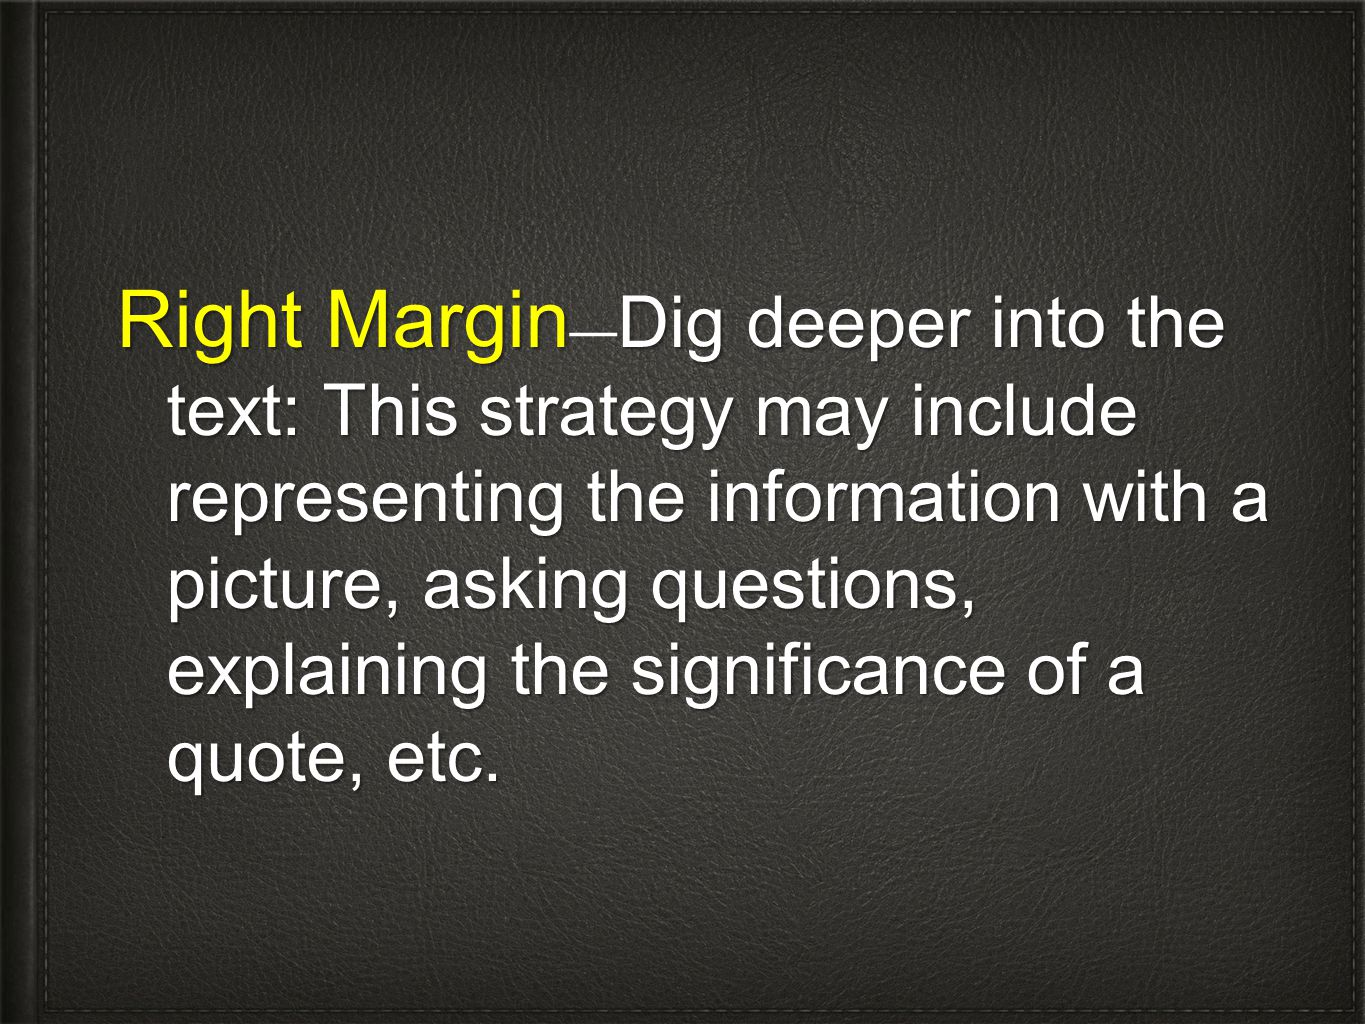 Right Margin—Dig deeper into the text: This strategy may include representing the information with a picture, asking questions, explaining the significance of a quote, etc.